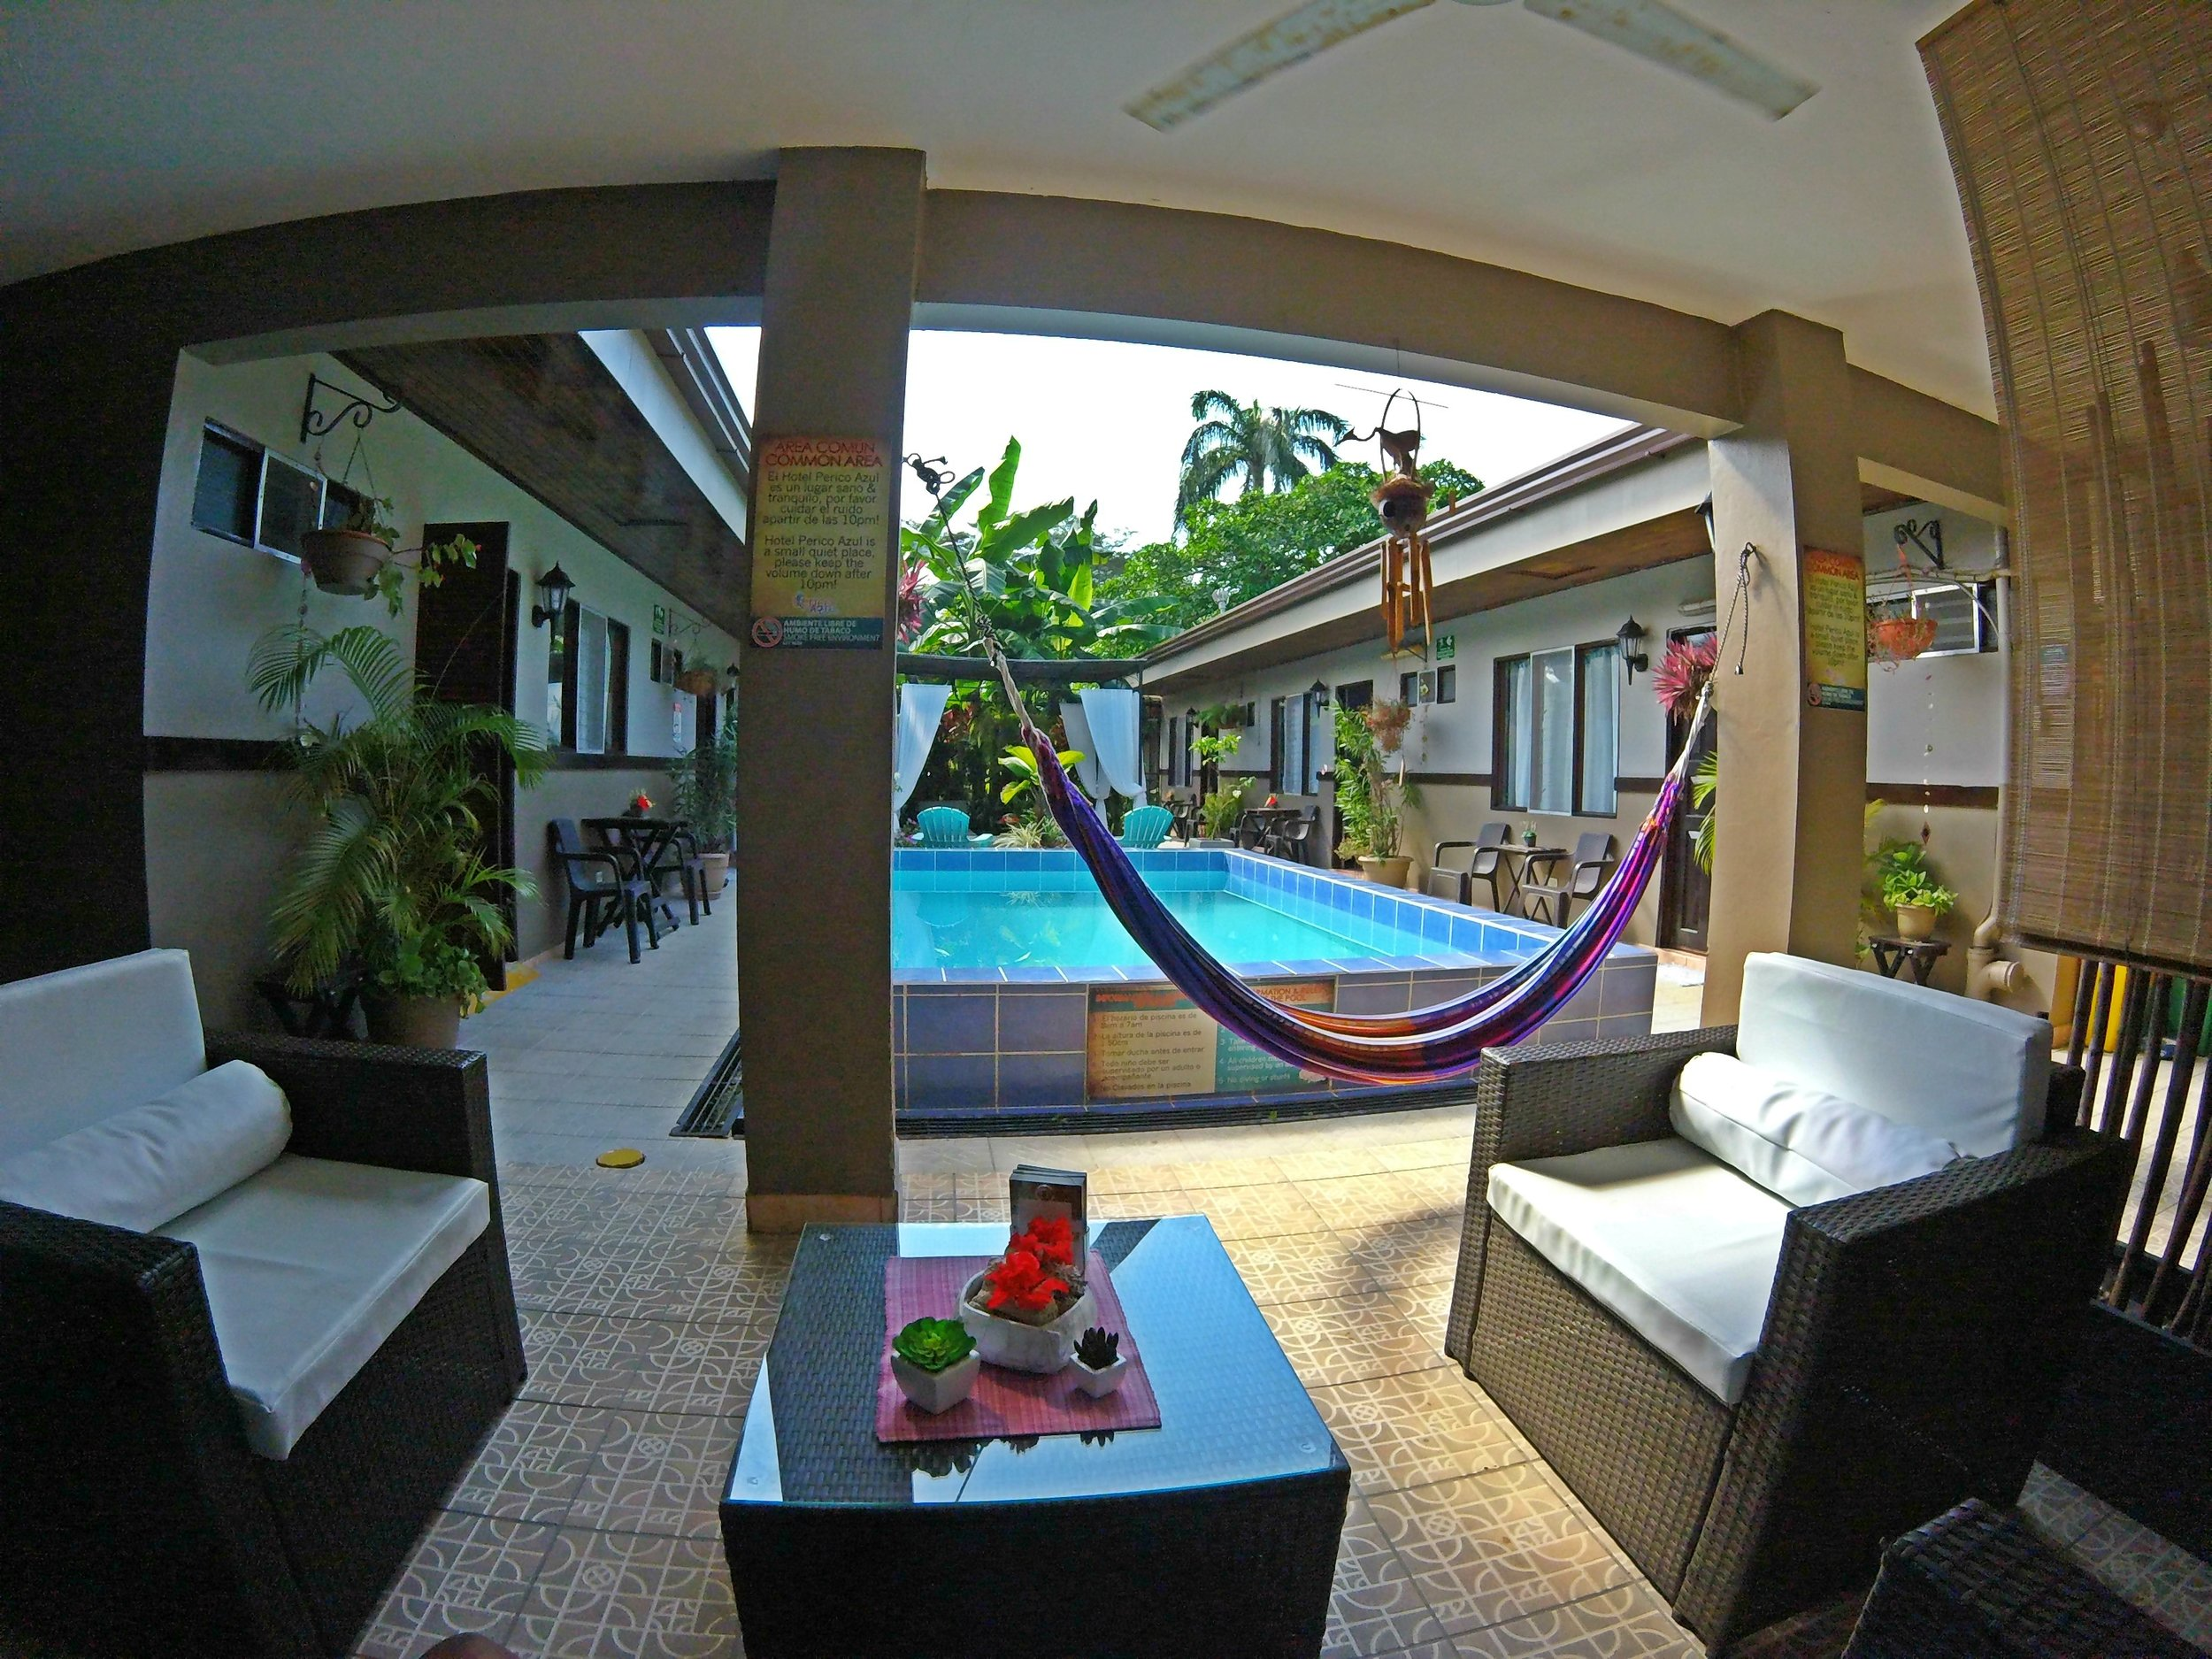 Hotel Perico azul - Our base camp and home